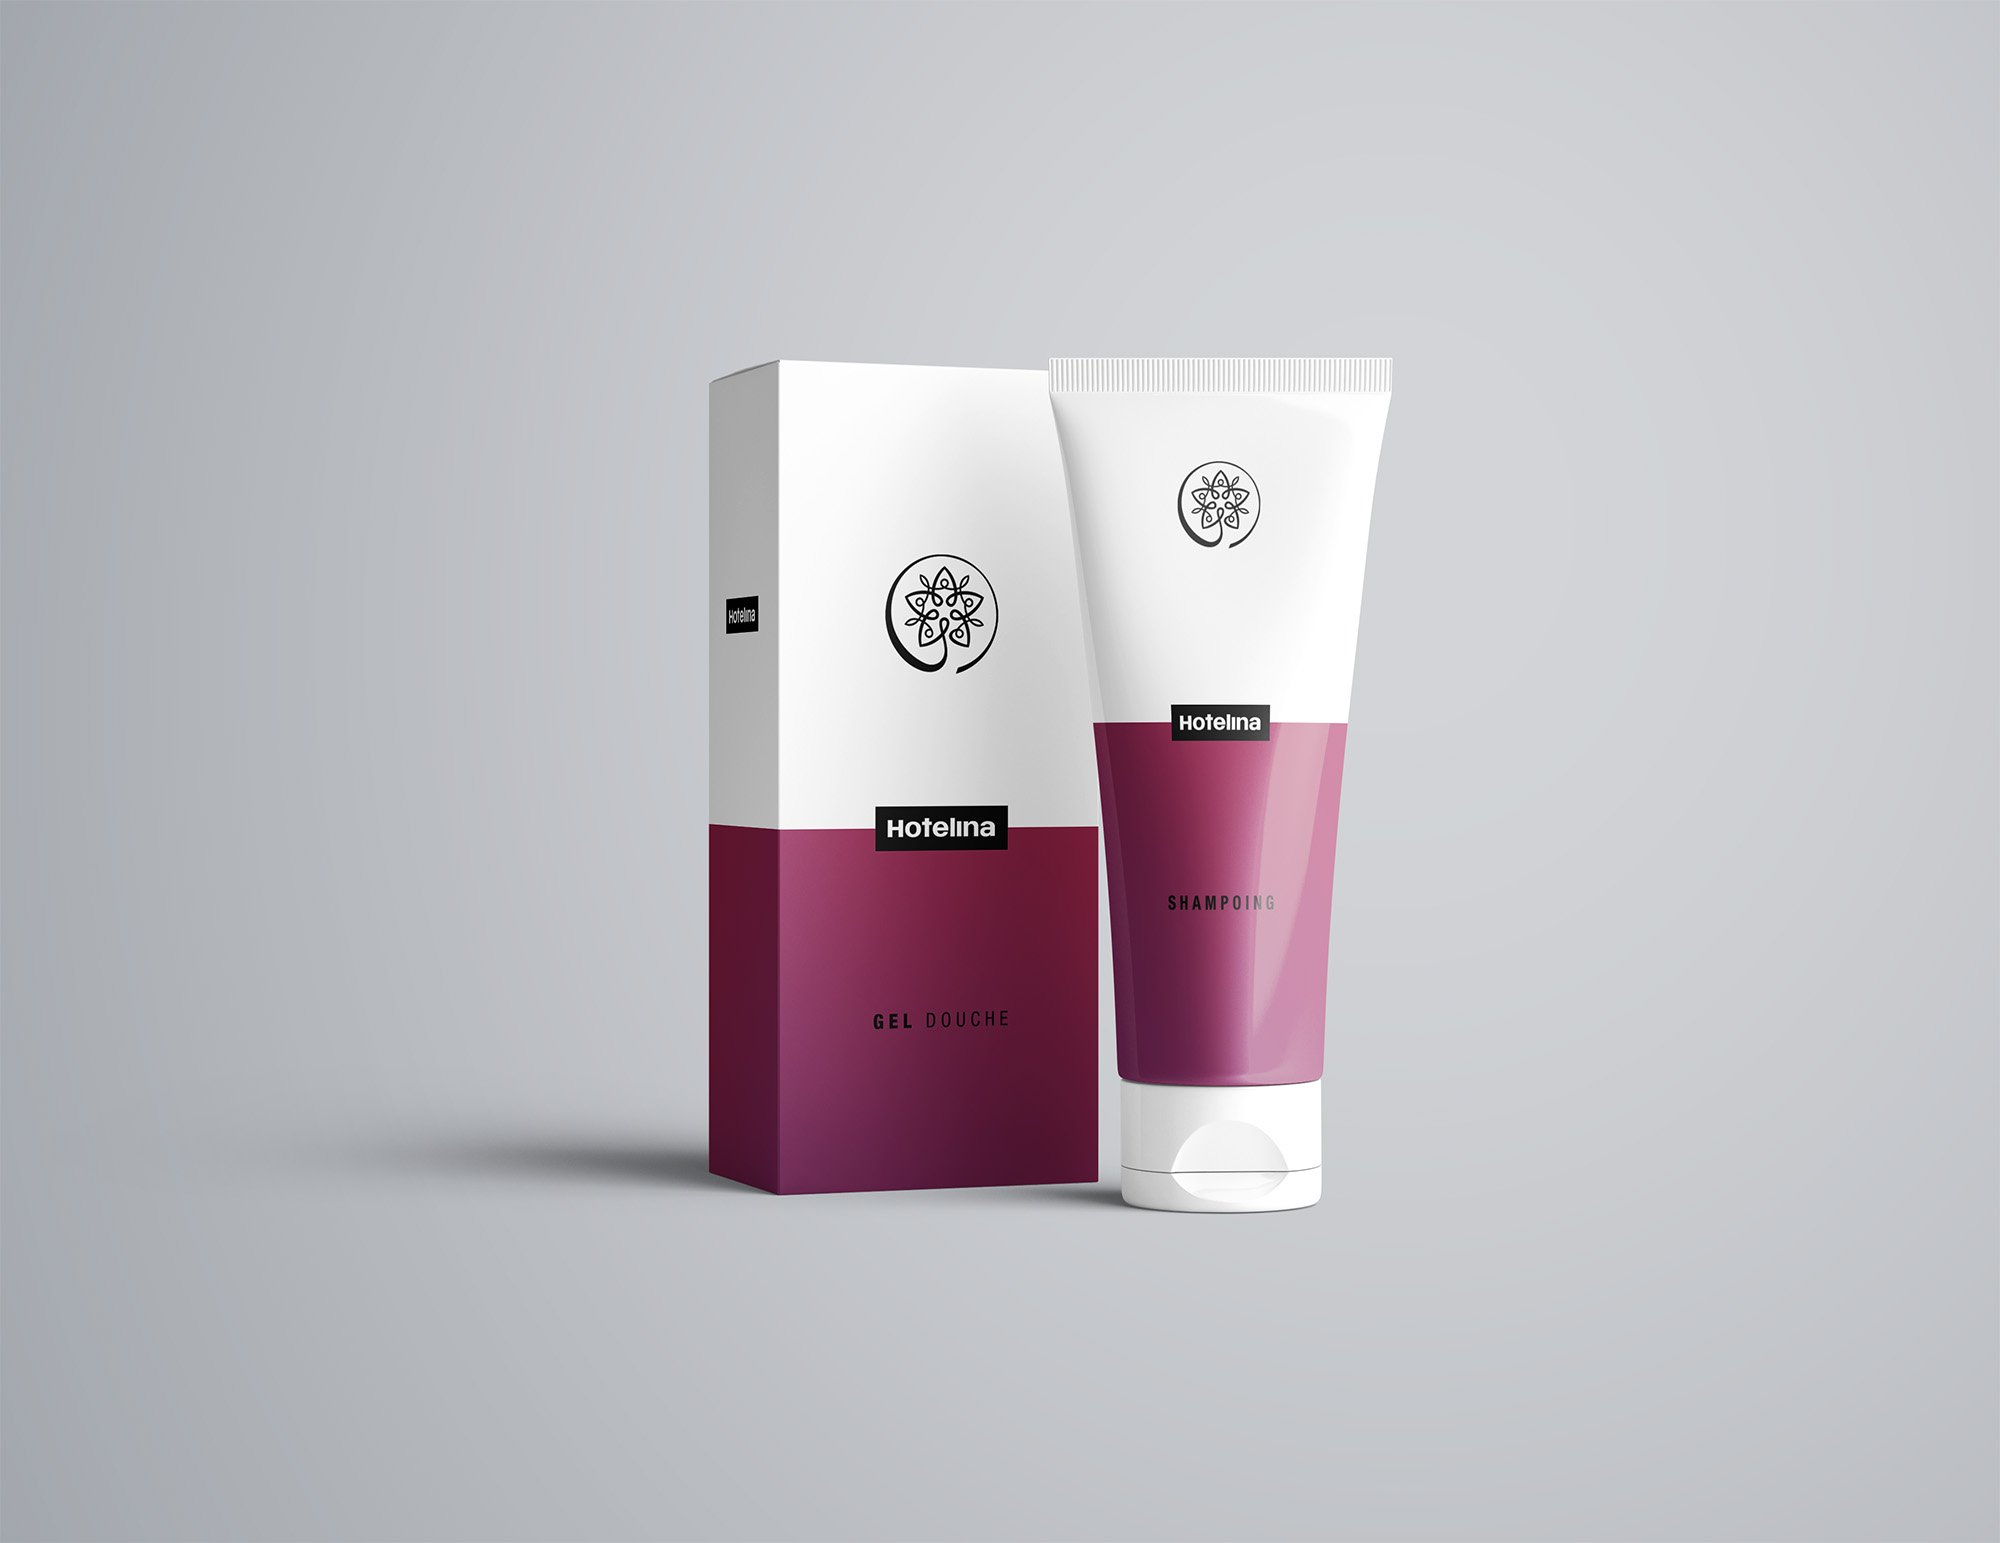 Packaging gel douche shampoing, hotel